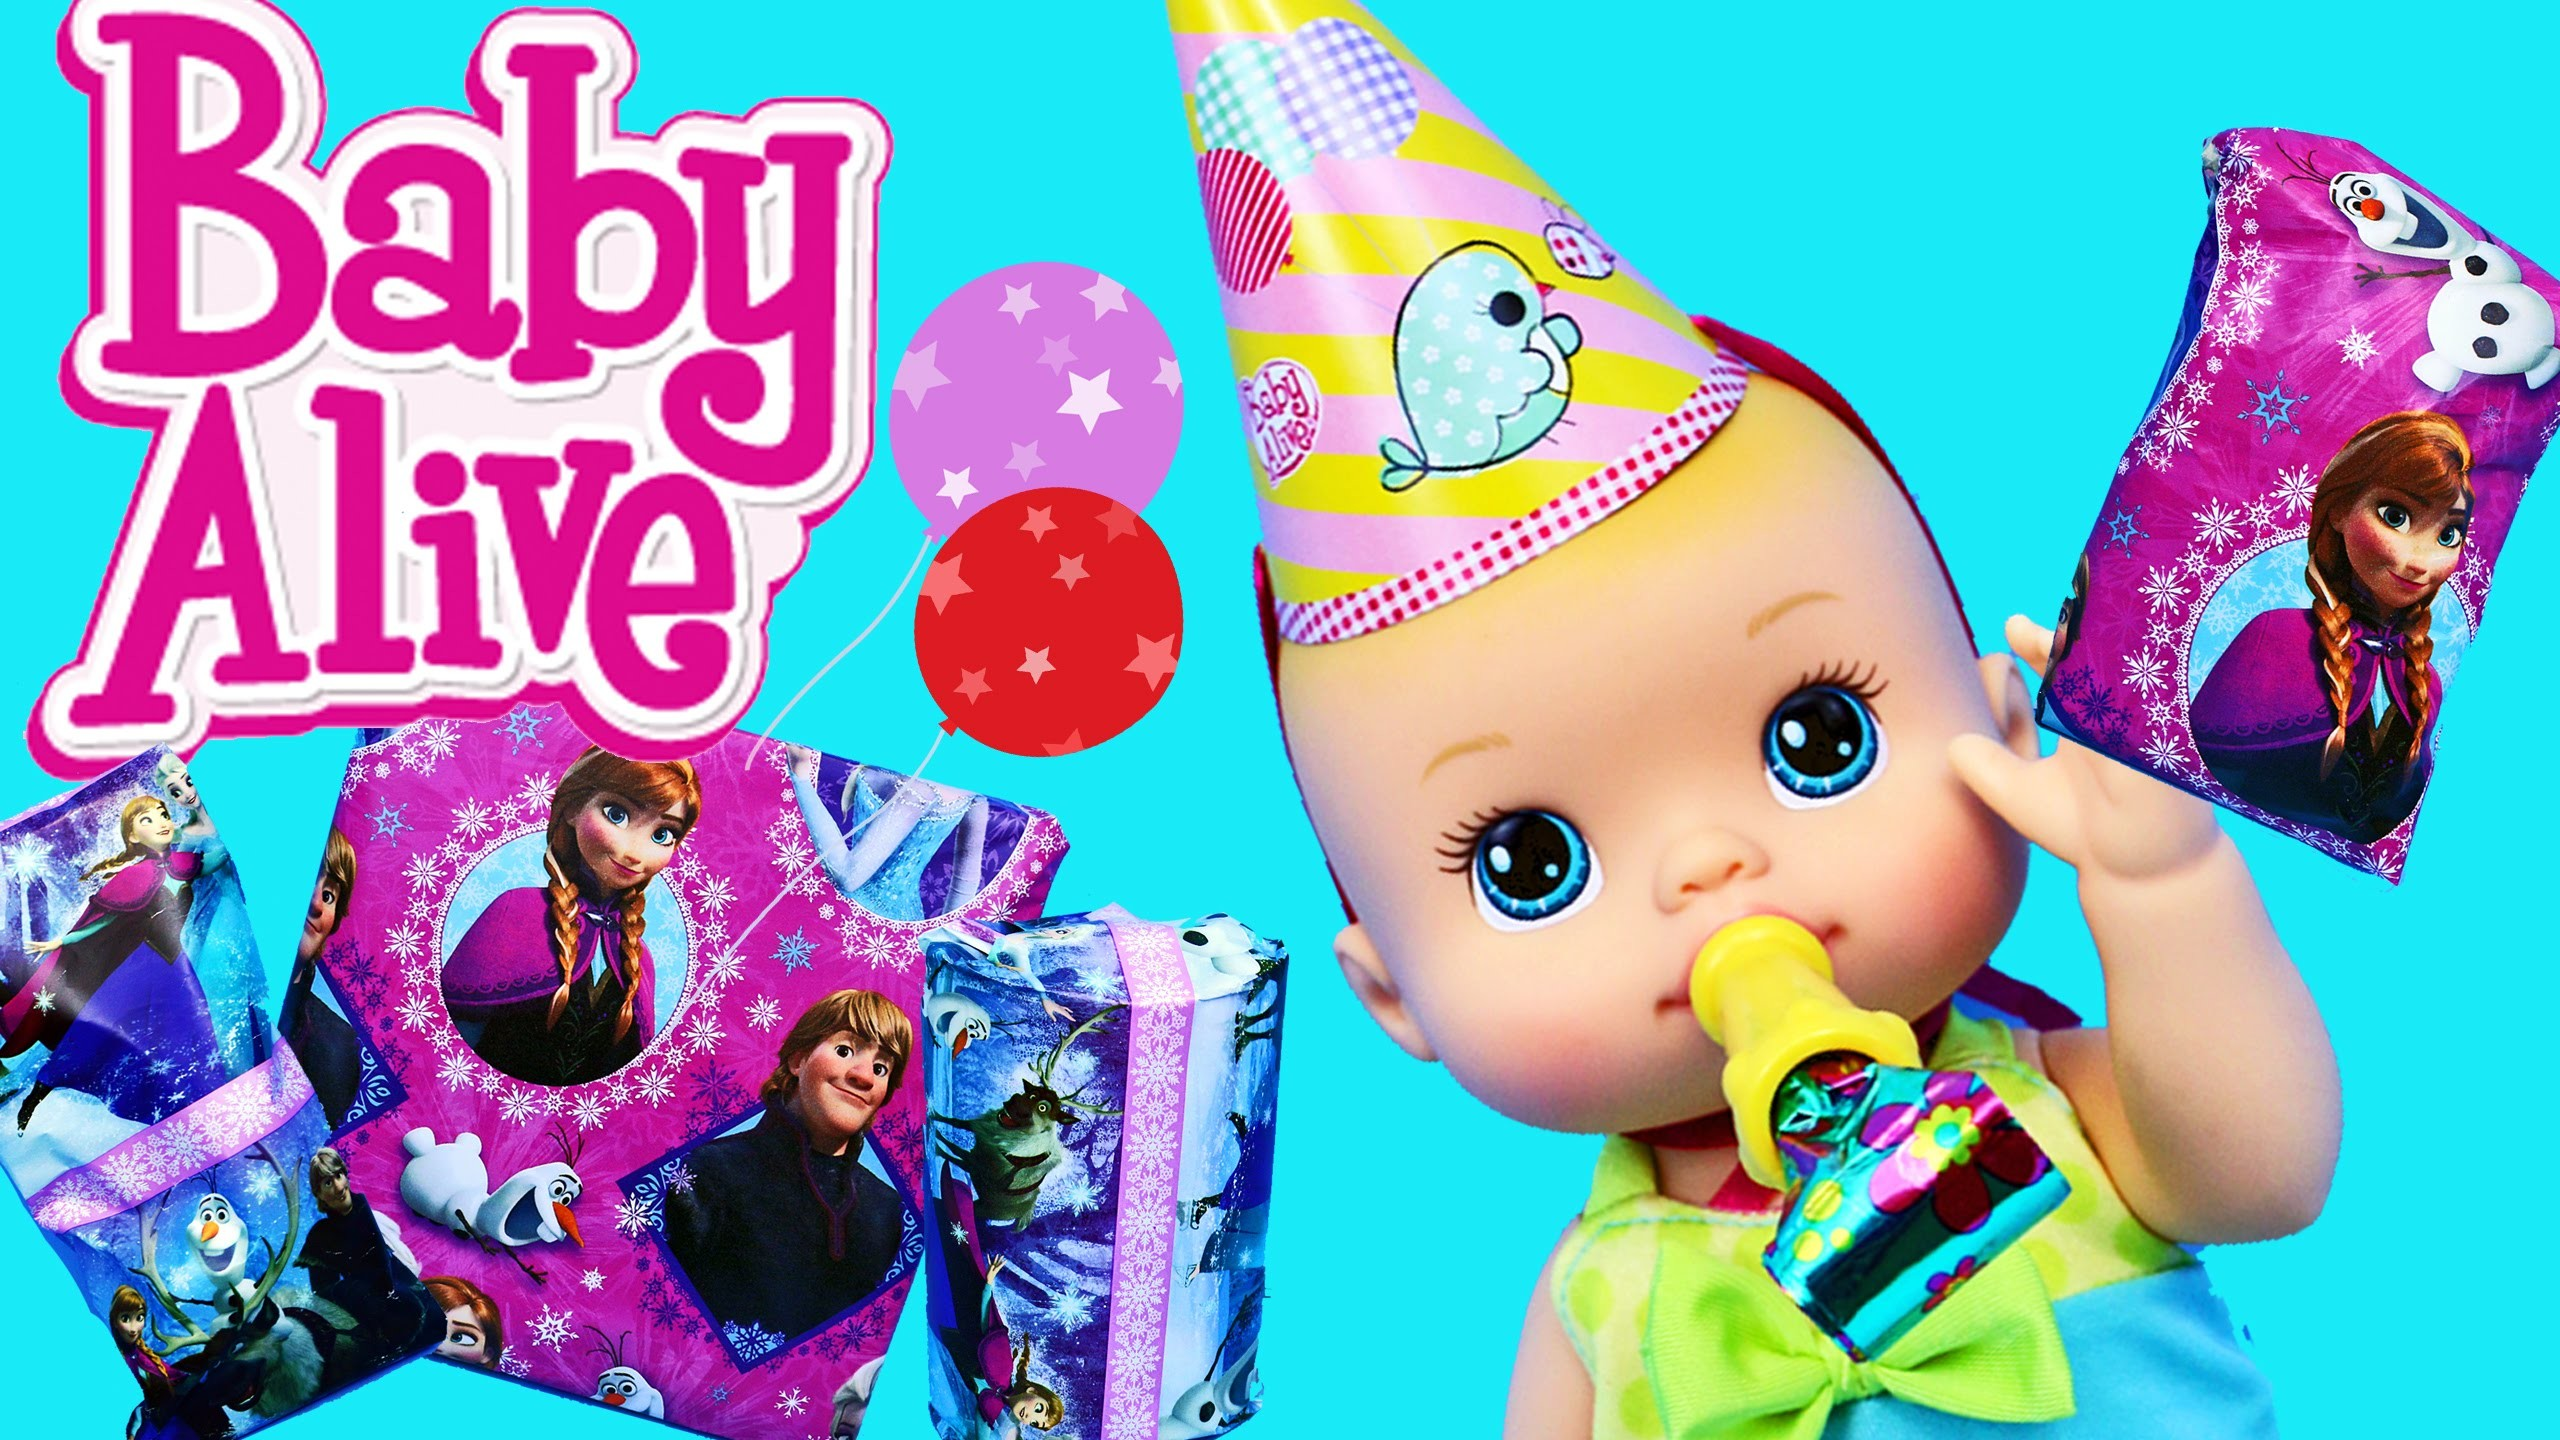 Baby Alive BIRTHDAY PARTY Disney Frozen Gifts Swim Dress Up Clothes, Blind Bags & Surprise Eggs Toys